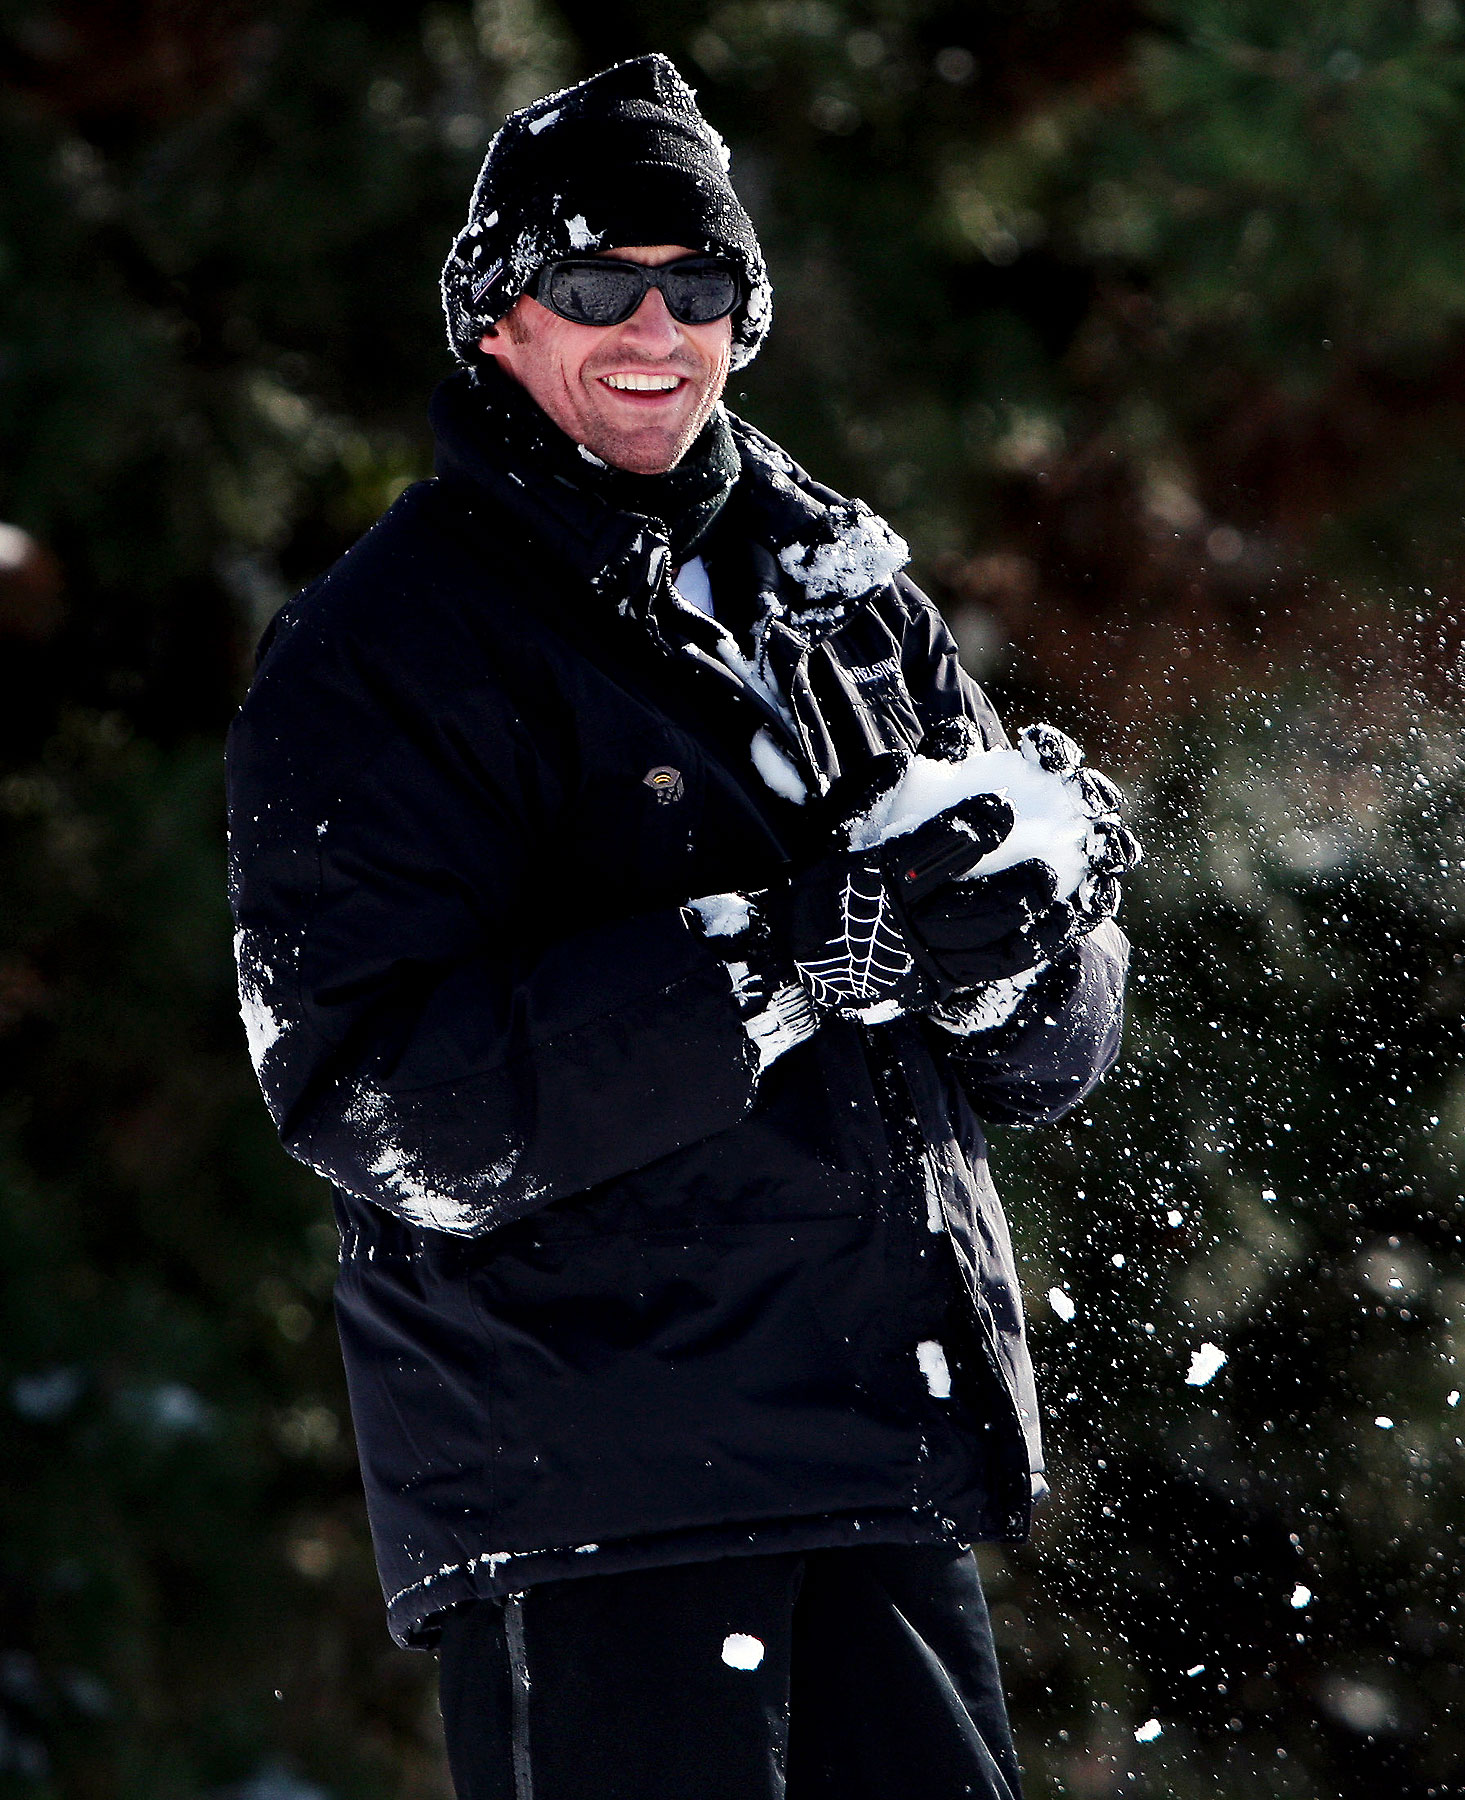 Hugh Jackman Frolics In the Snow (PHOTOS)